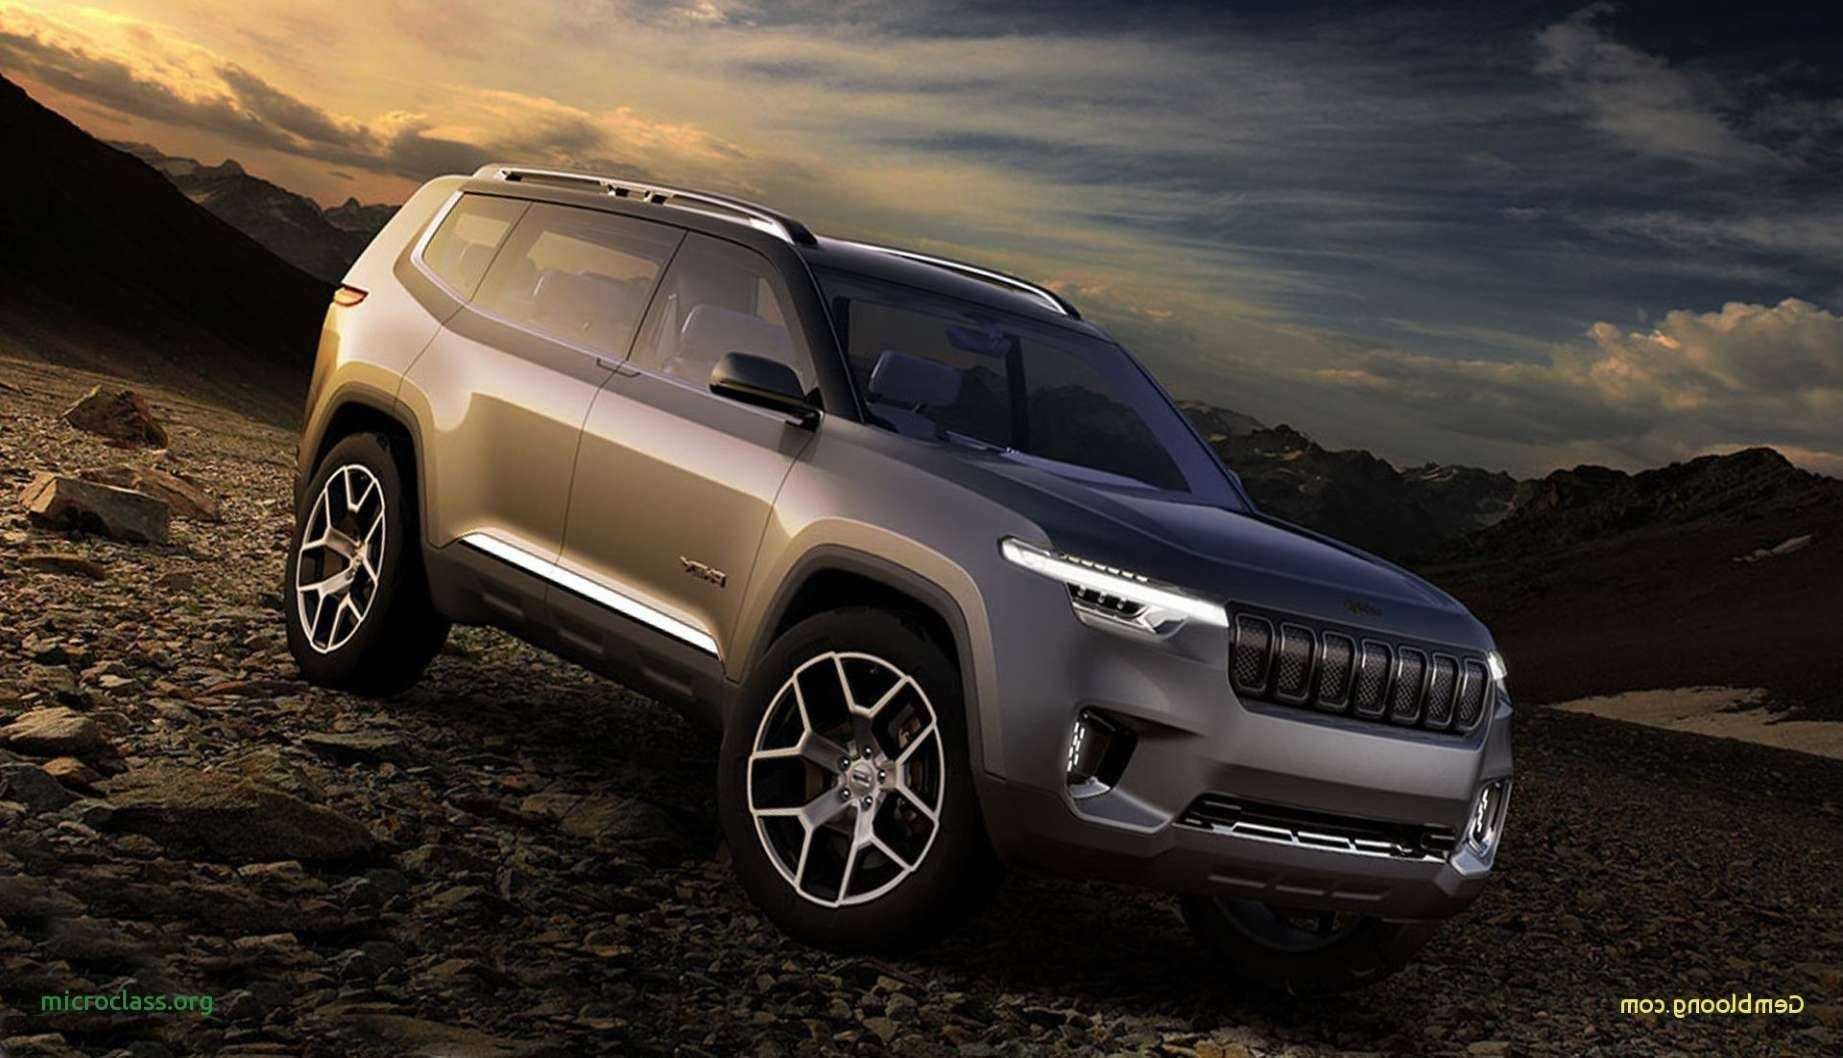 92 New 2020 Jeep Srt8 Release Date And Concept